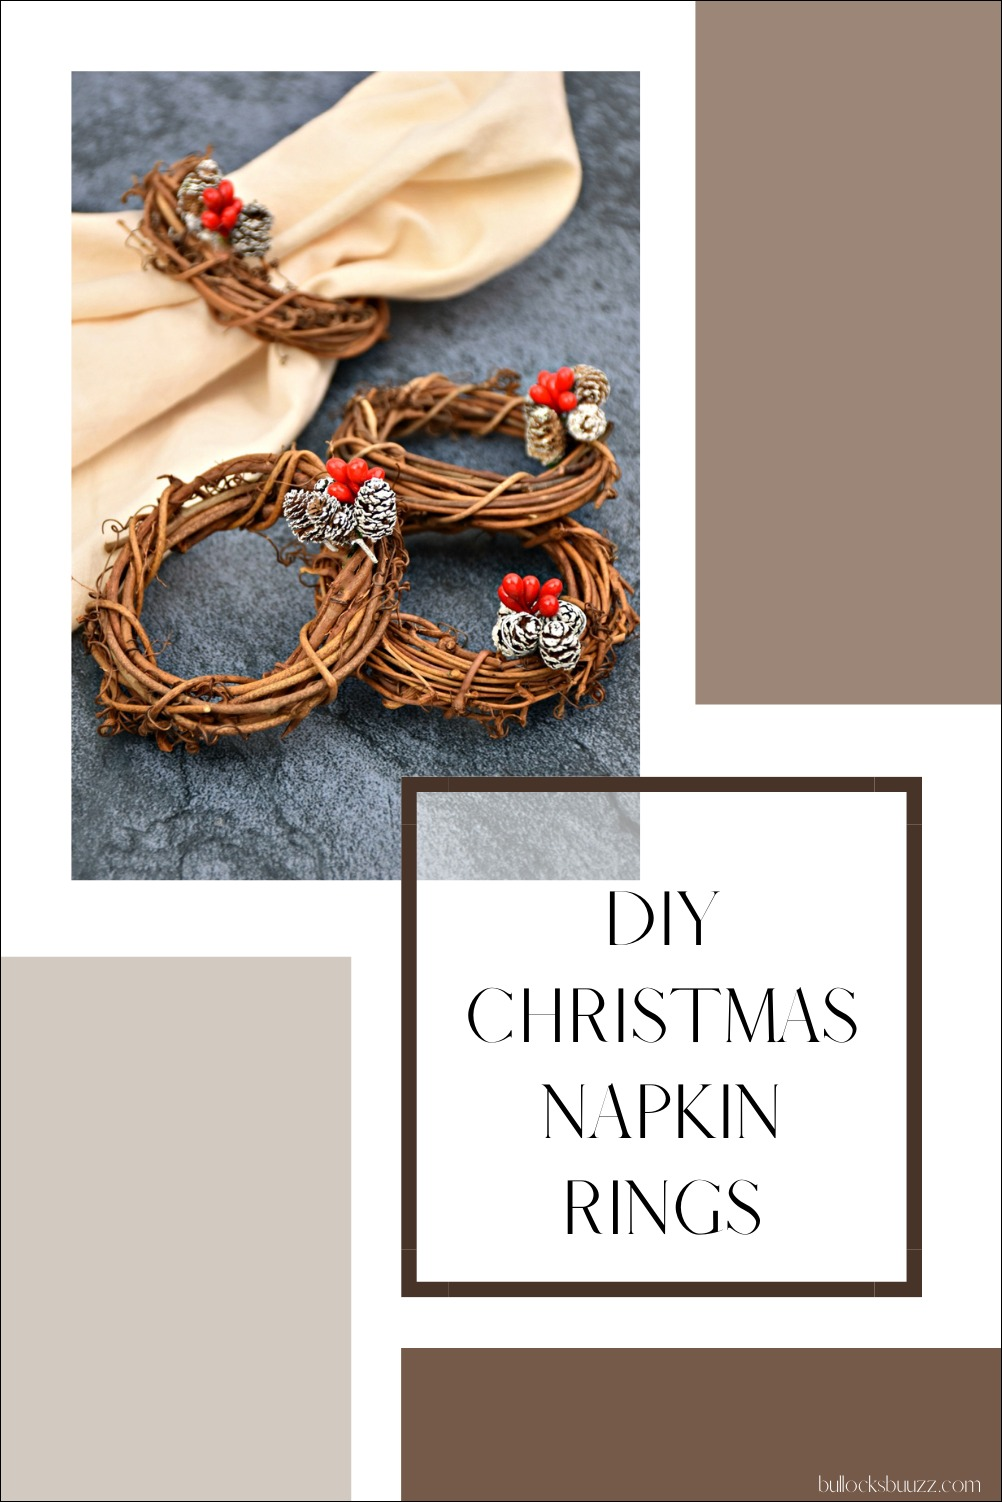 4 beautiful DIY Christmas napkin rings made of tiny grapevine wreaths and mini pinecones with berries